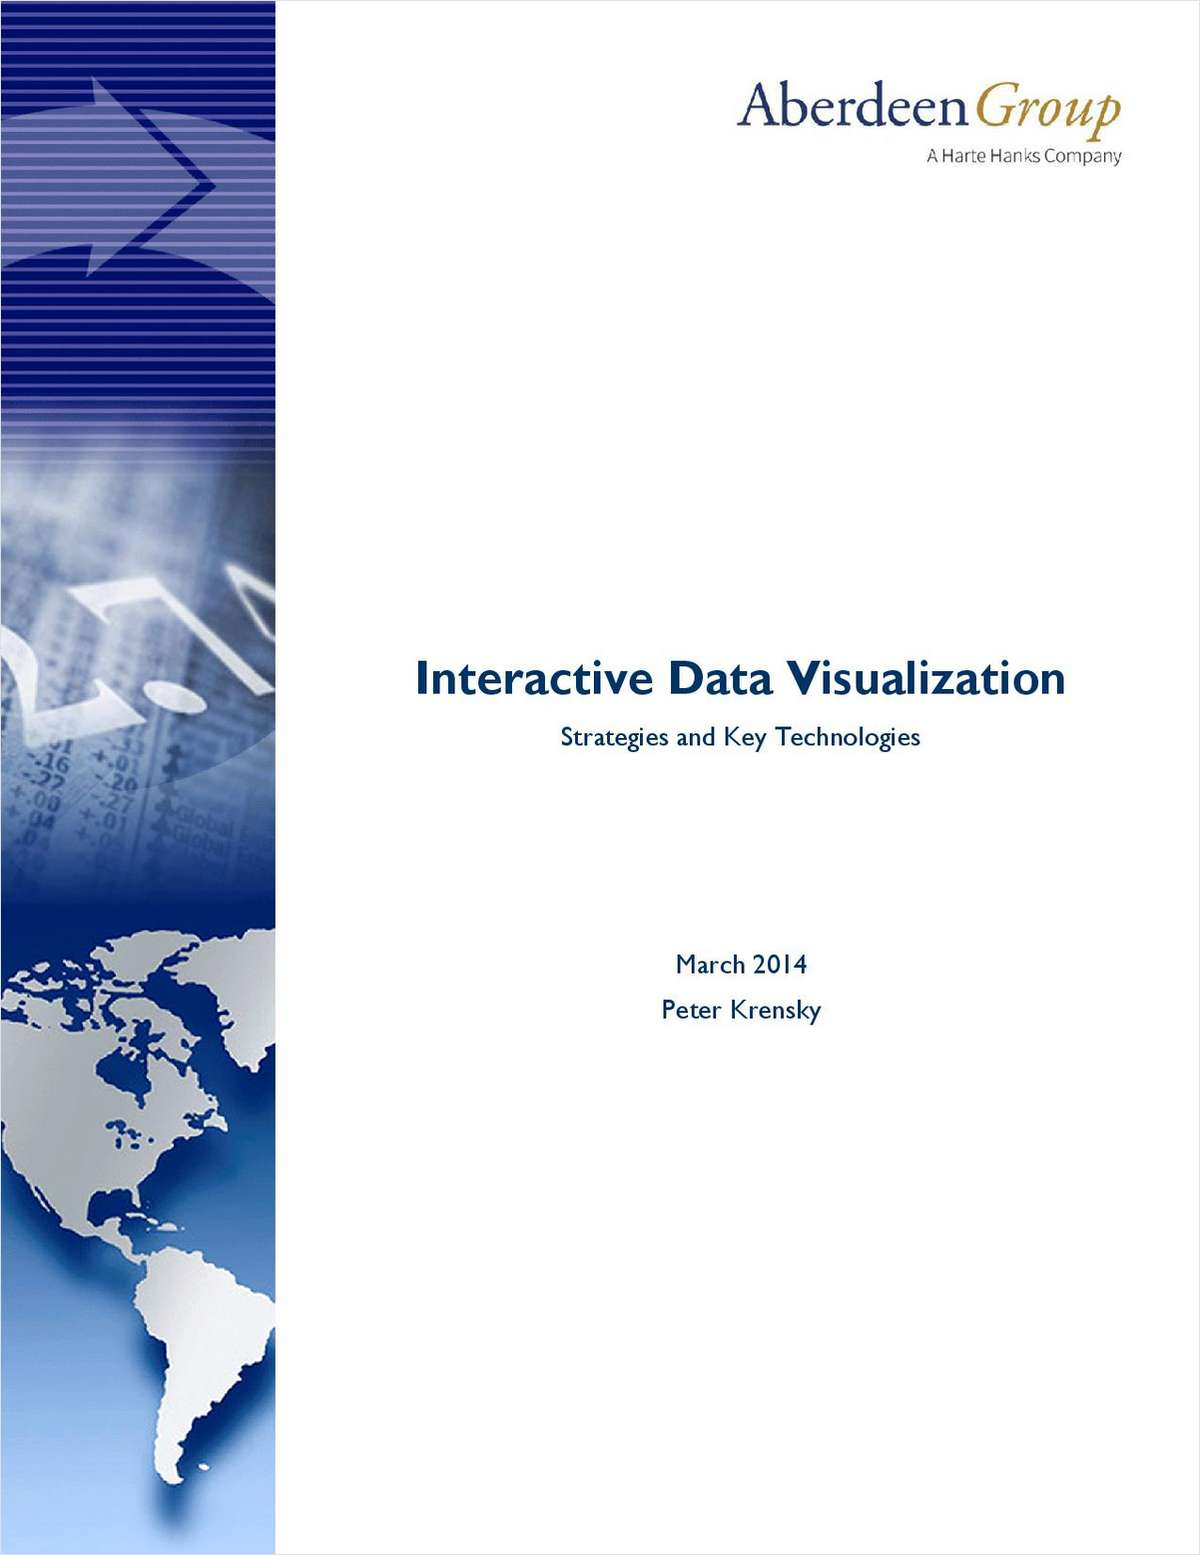 Interactive Data Visualization: Strategies and Key Technologies